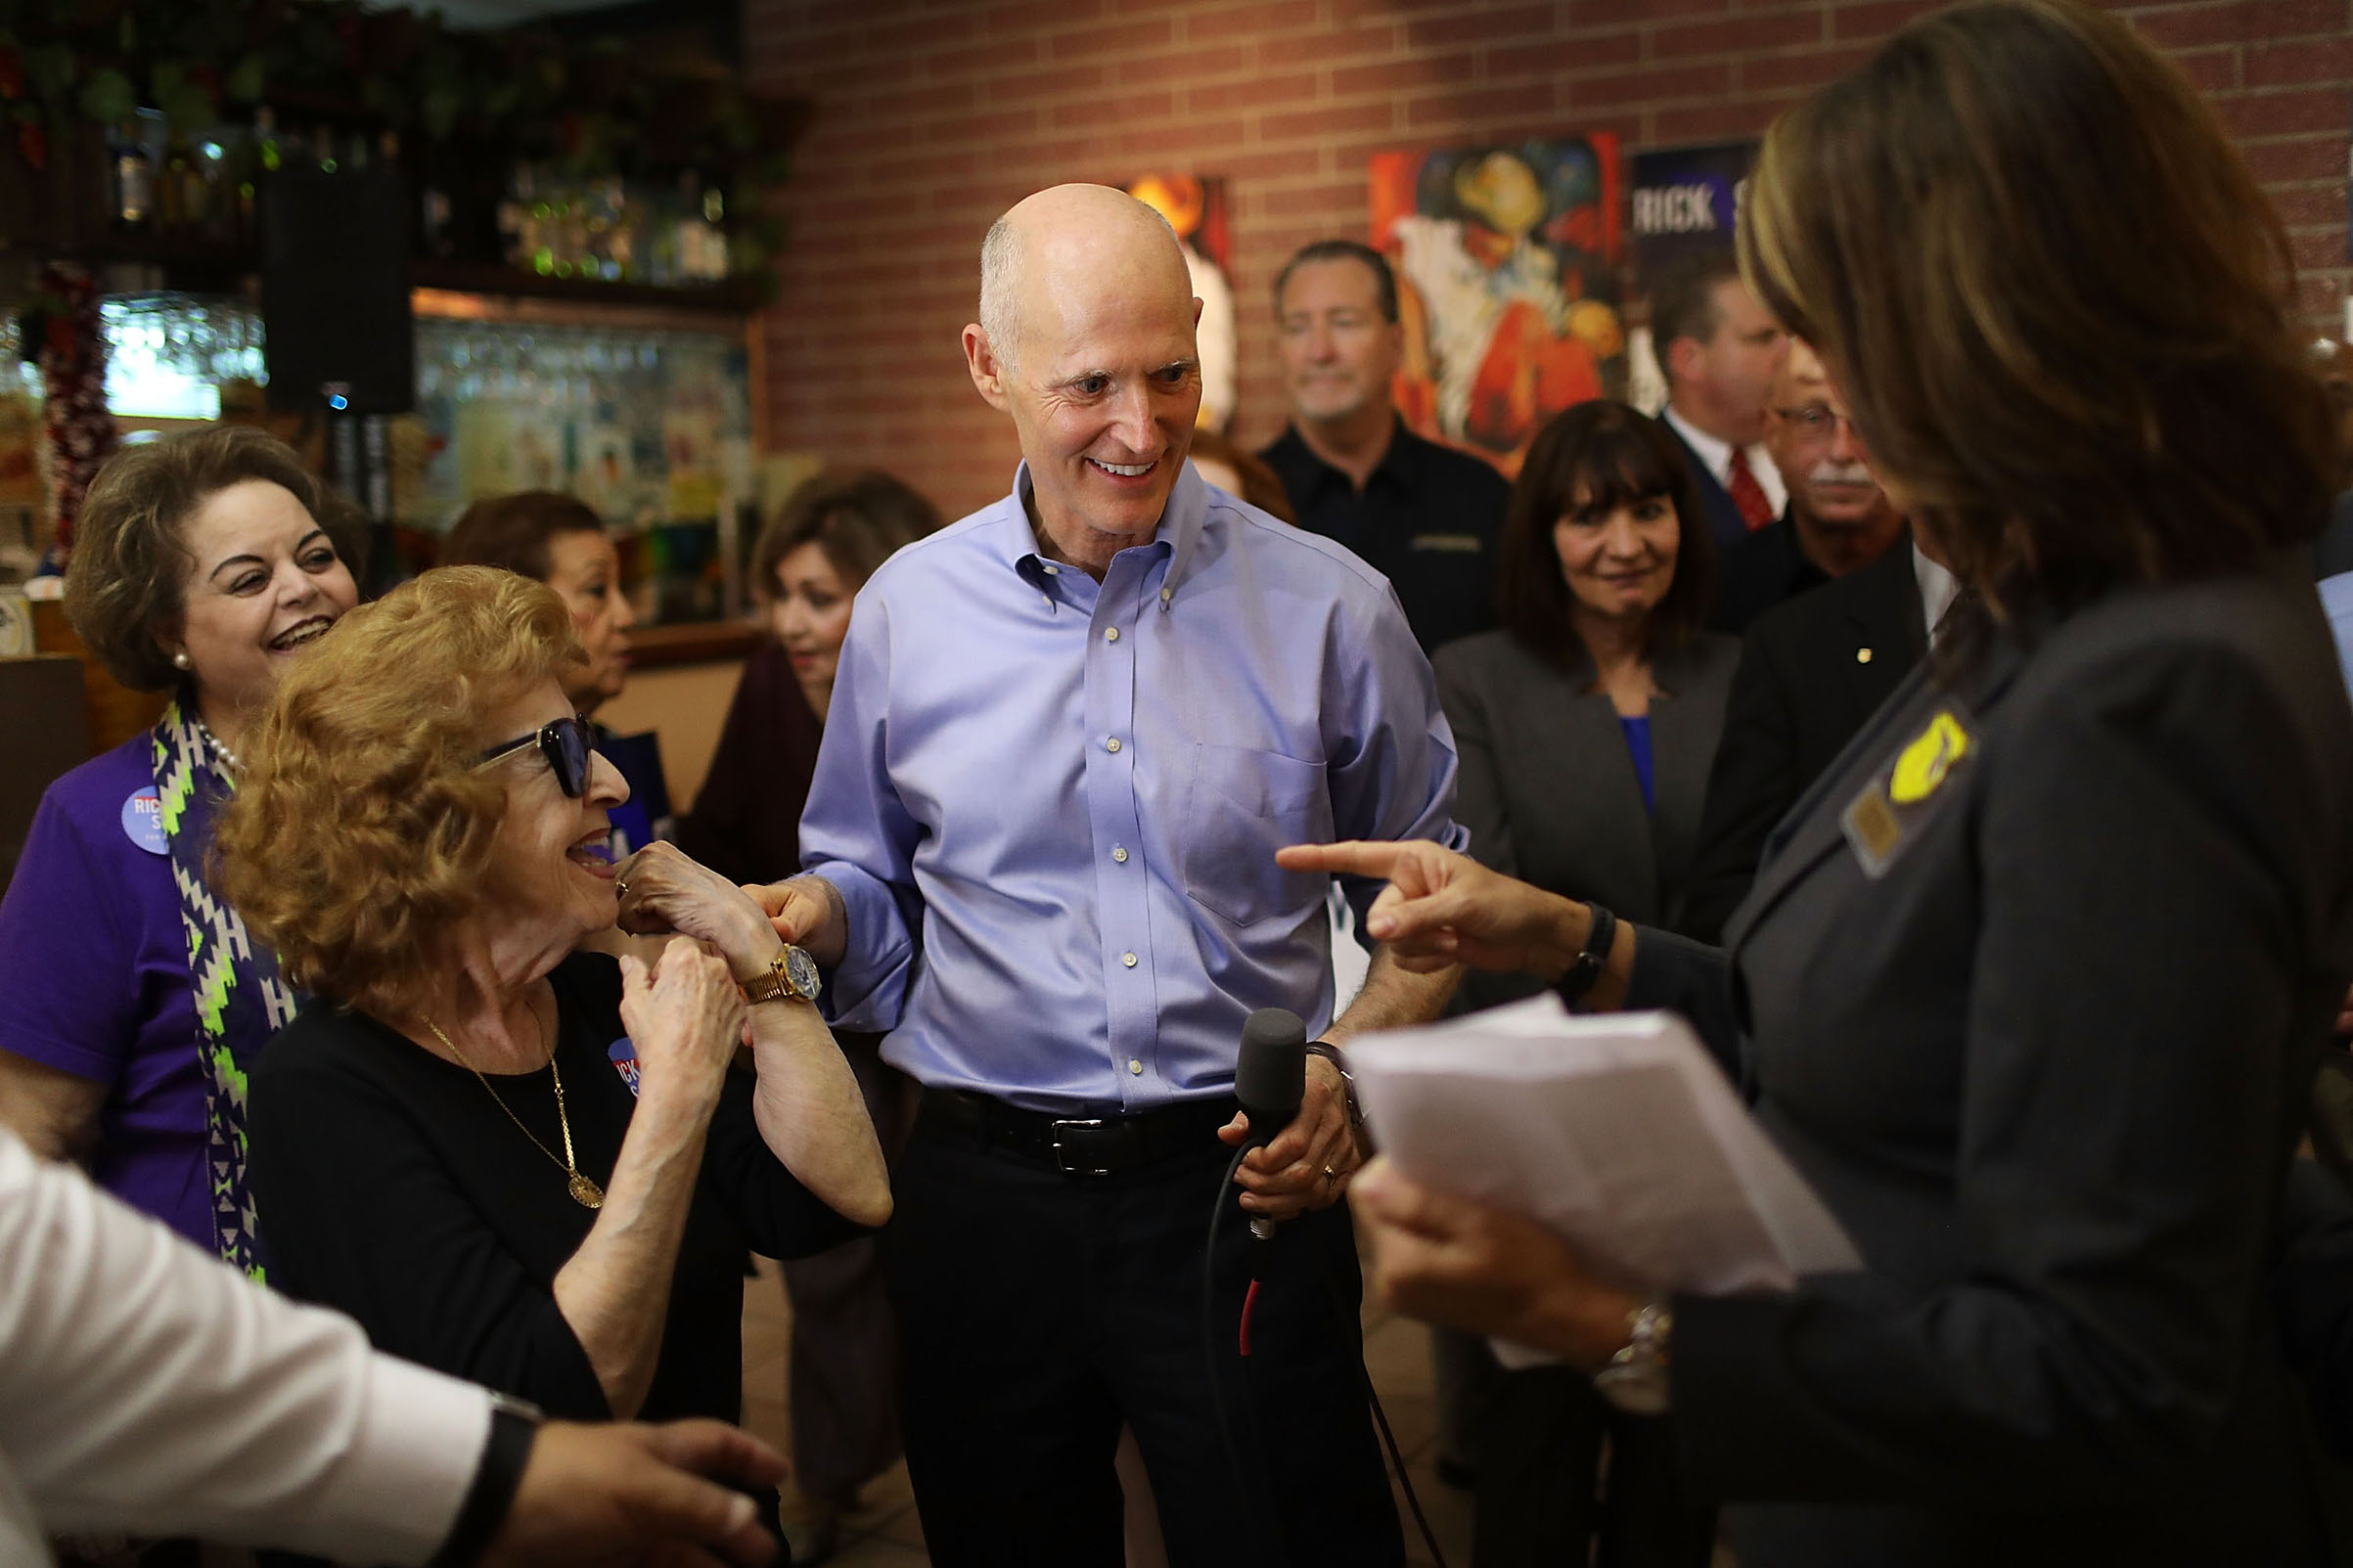 Scott greets voters on June 14 during a campaign stop at Chico's Restaurant in Hialeah, Fla.